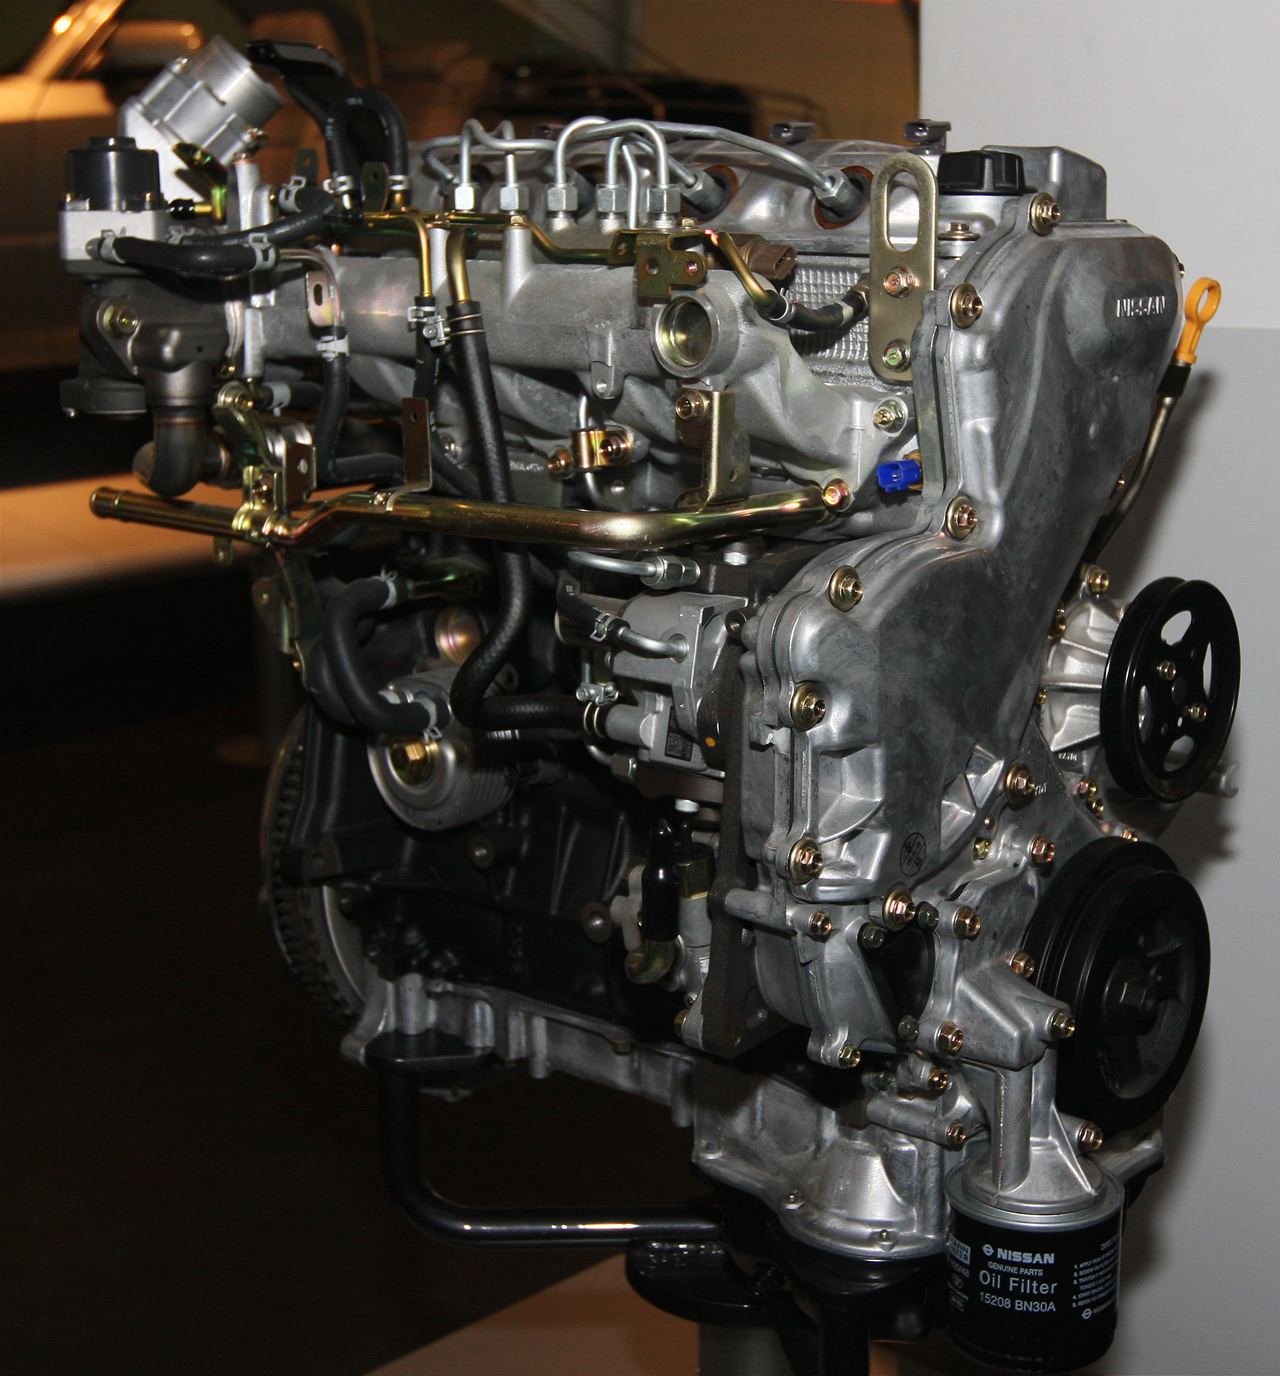 File 2003 Nissan Yd22ddti Engine Wikimedia Commons